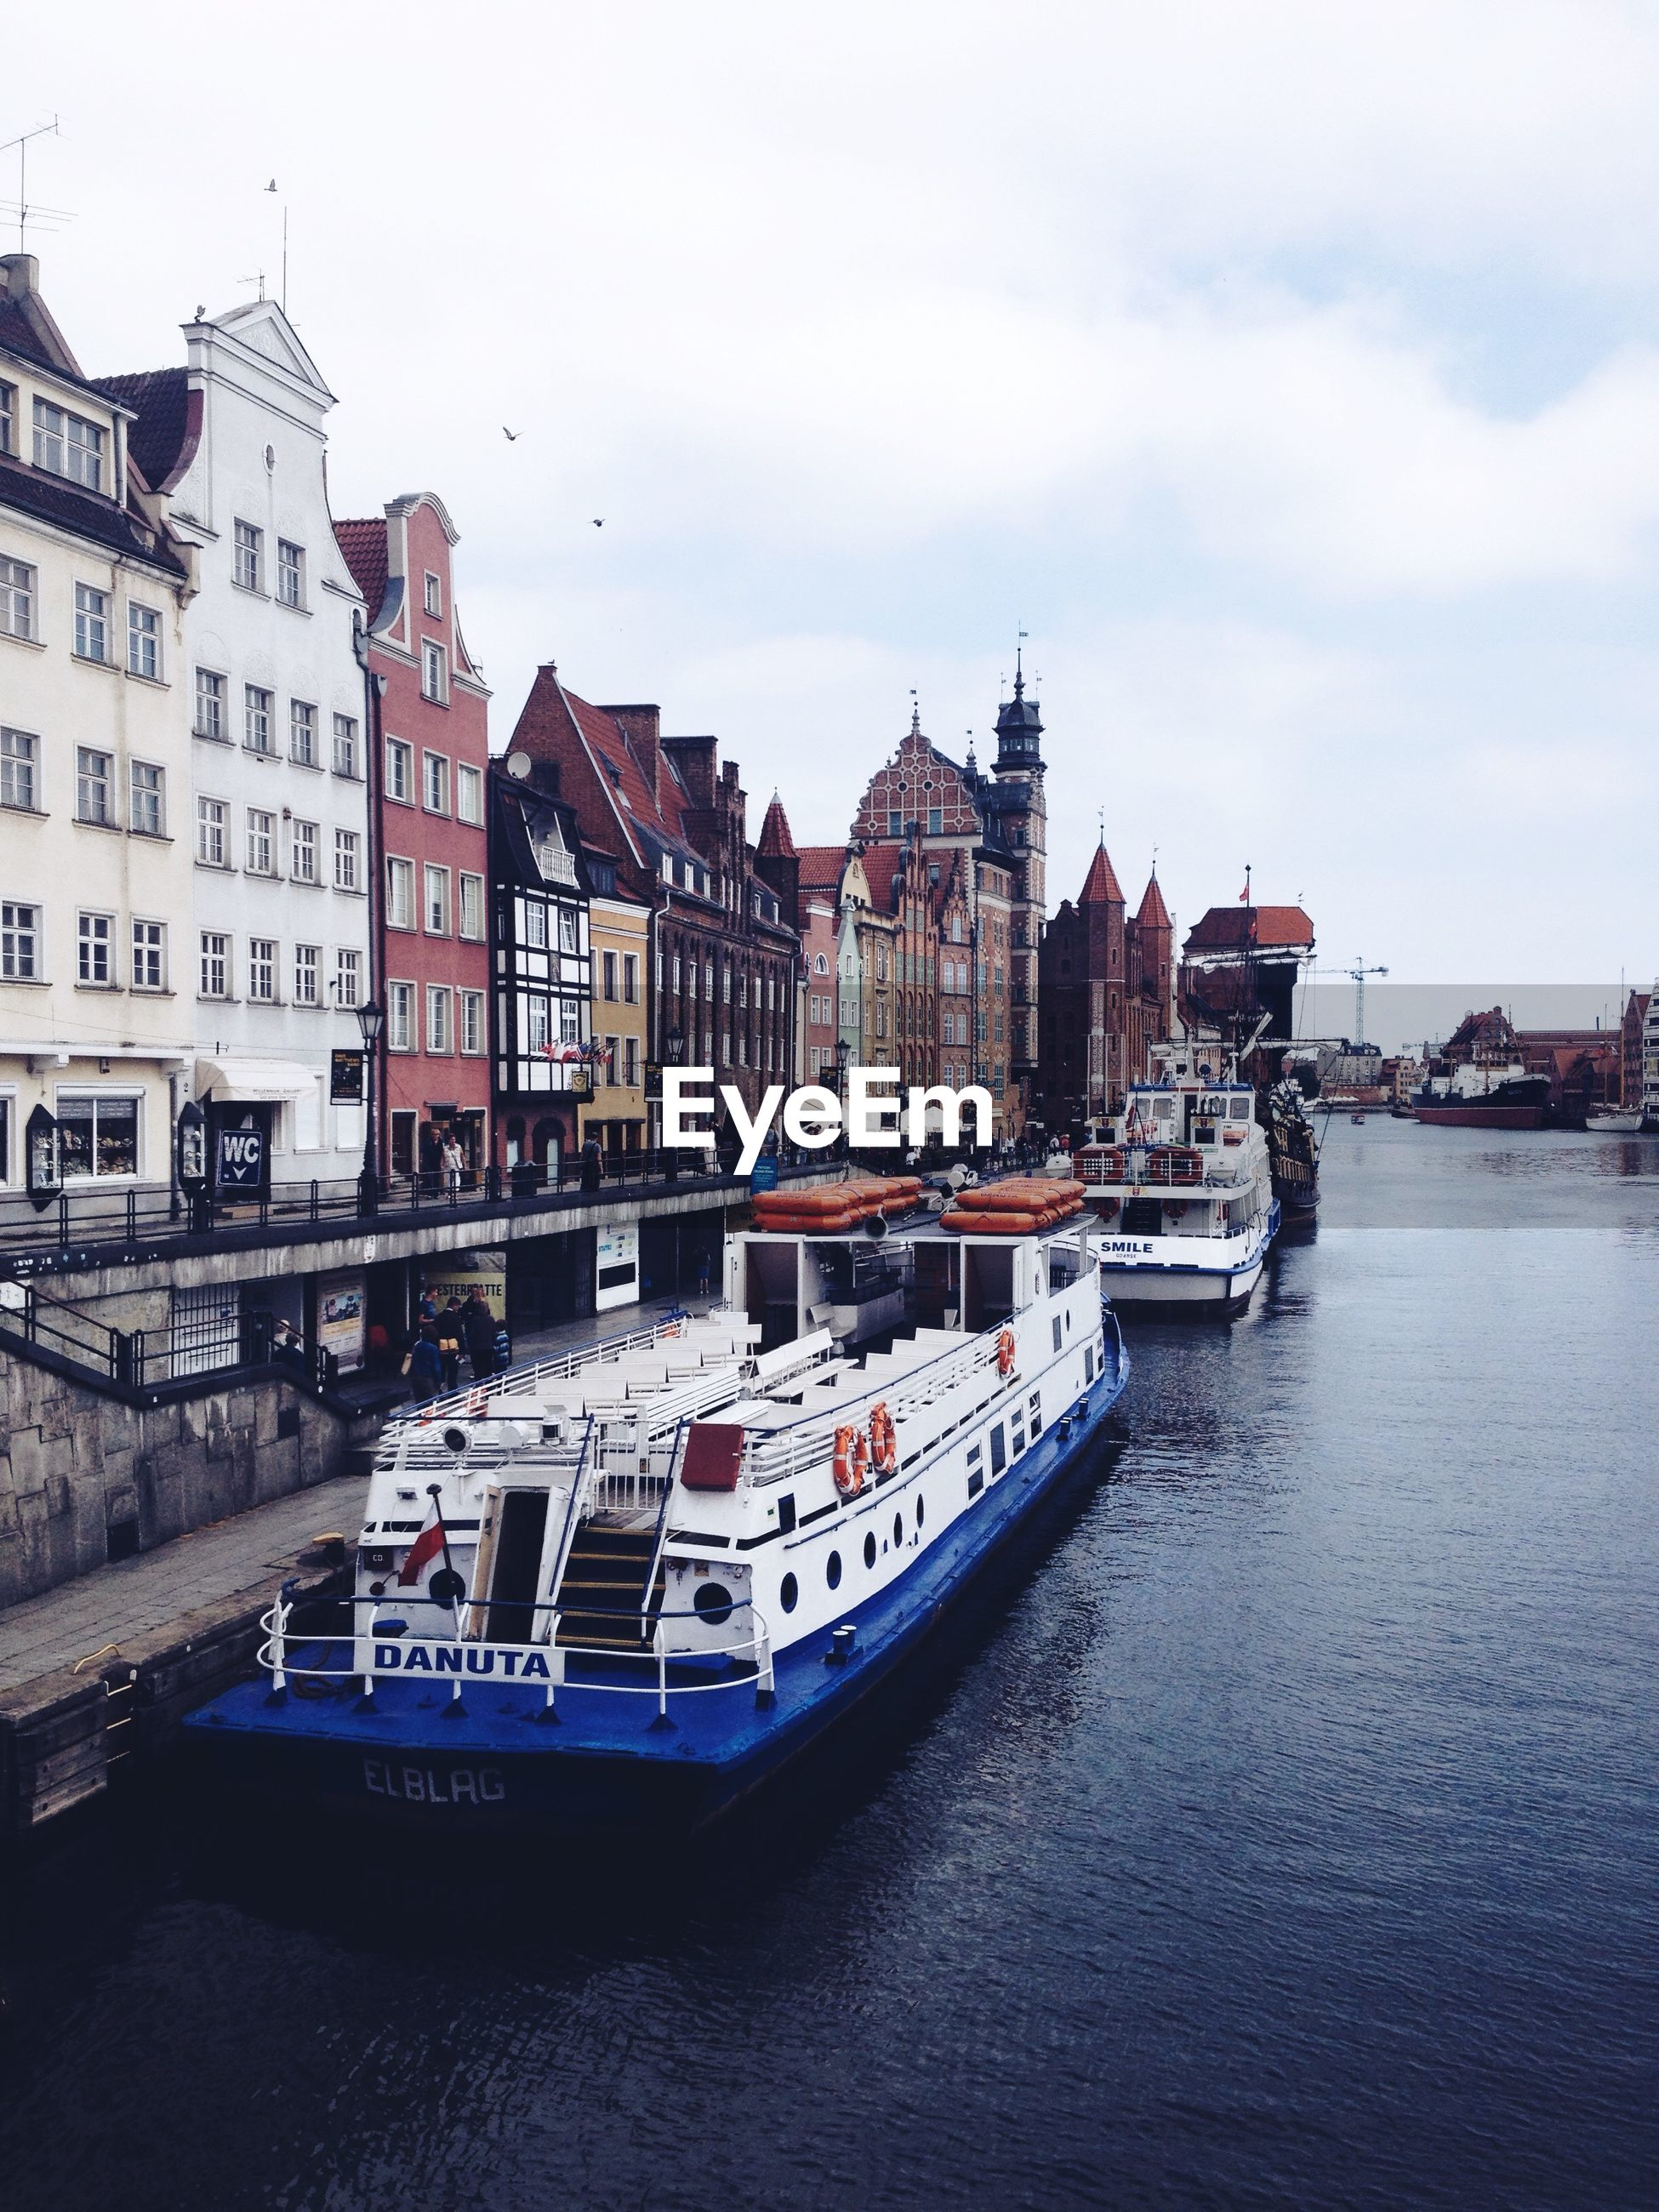 building exterior, architecture, built structure, water, nautical vessel, transportation, boat, waterfront, mode of transport, moored, city, sky, canal, residential structure, river, residential building, house, residential district, building, sea